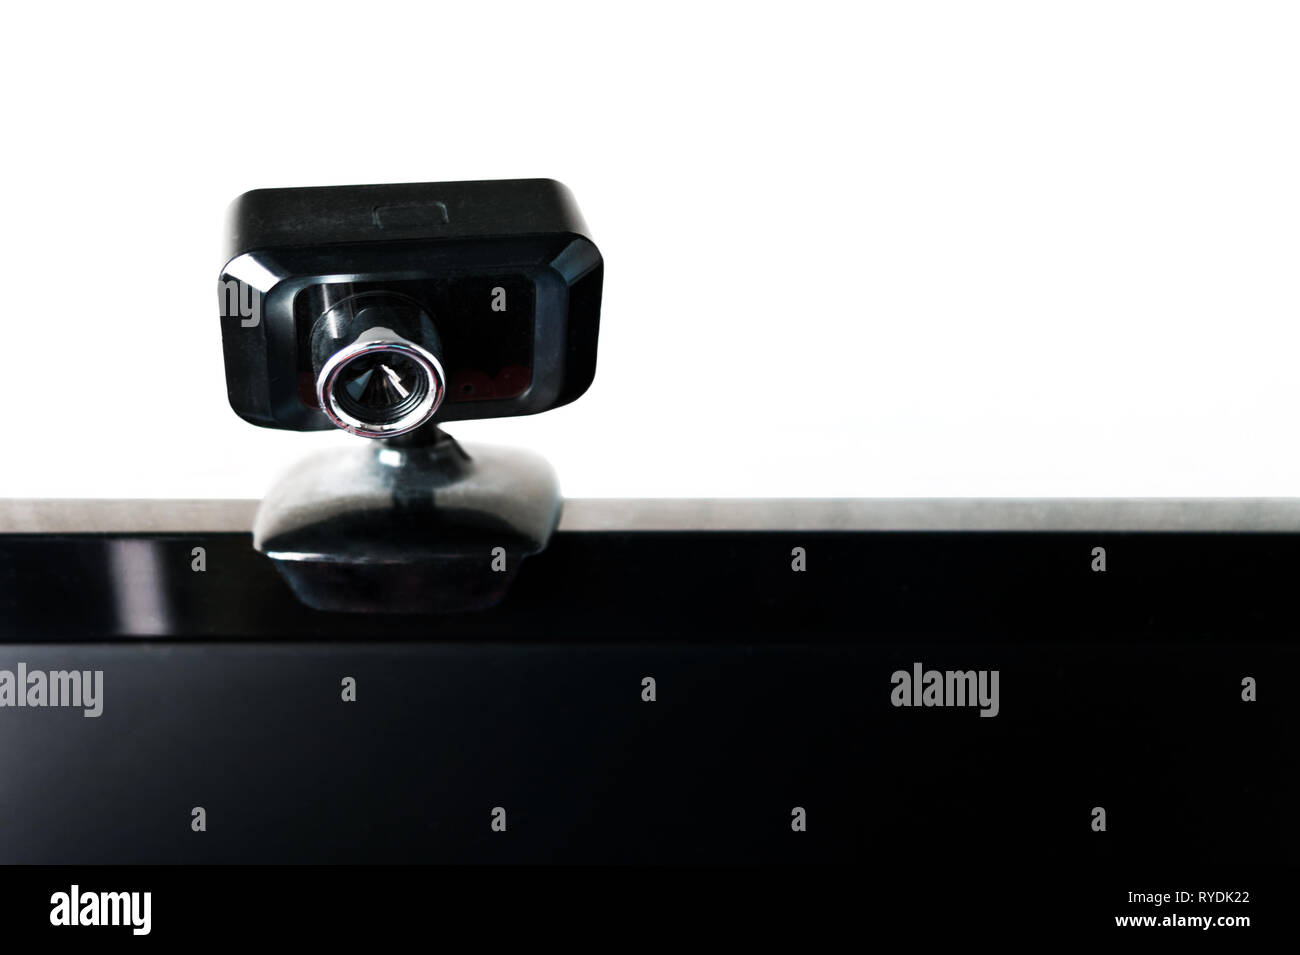 USB Webcam, Web Camera, Mounted on a Computer Monitor with Black Screen. Video Streaming, Webinar, Conference Call. Data Protection, Network, Cyber Se - Stock Image